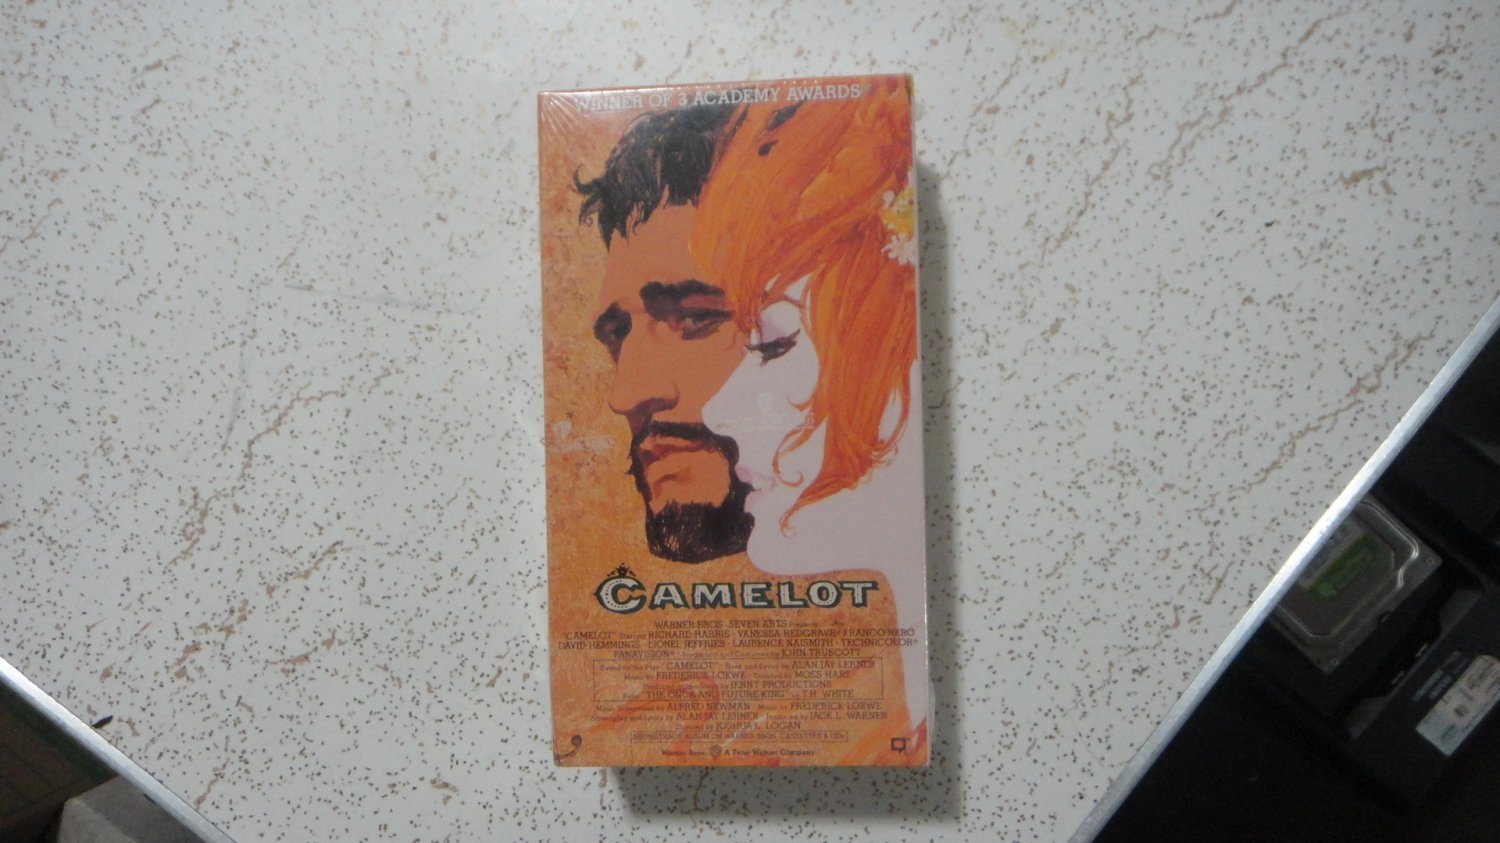 CAMELOT - VHS 2-tapes sealed and new!!! Richard Harris.